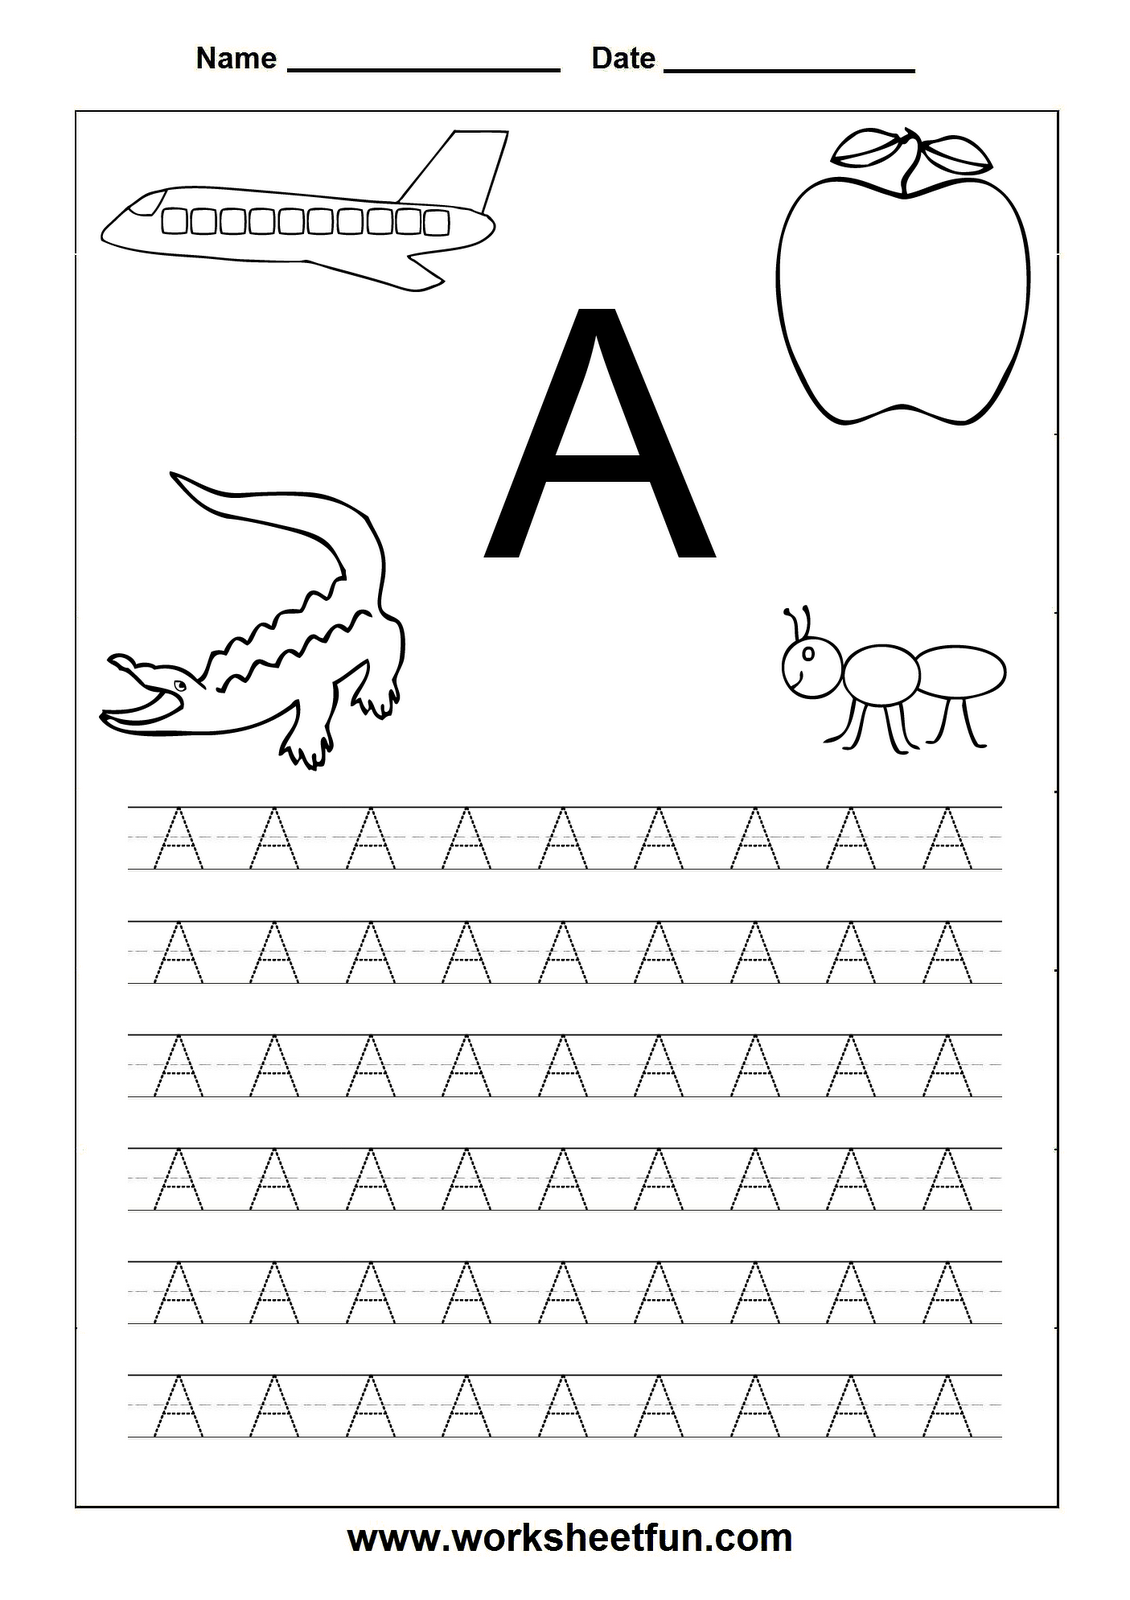 Letter Worksheets For Kindergarten Printable Letters – Preschool Worksheets Tracing Letters